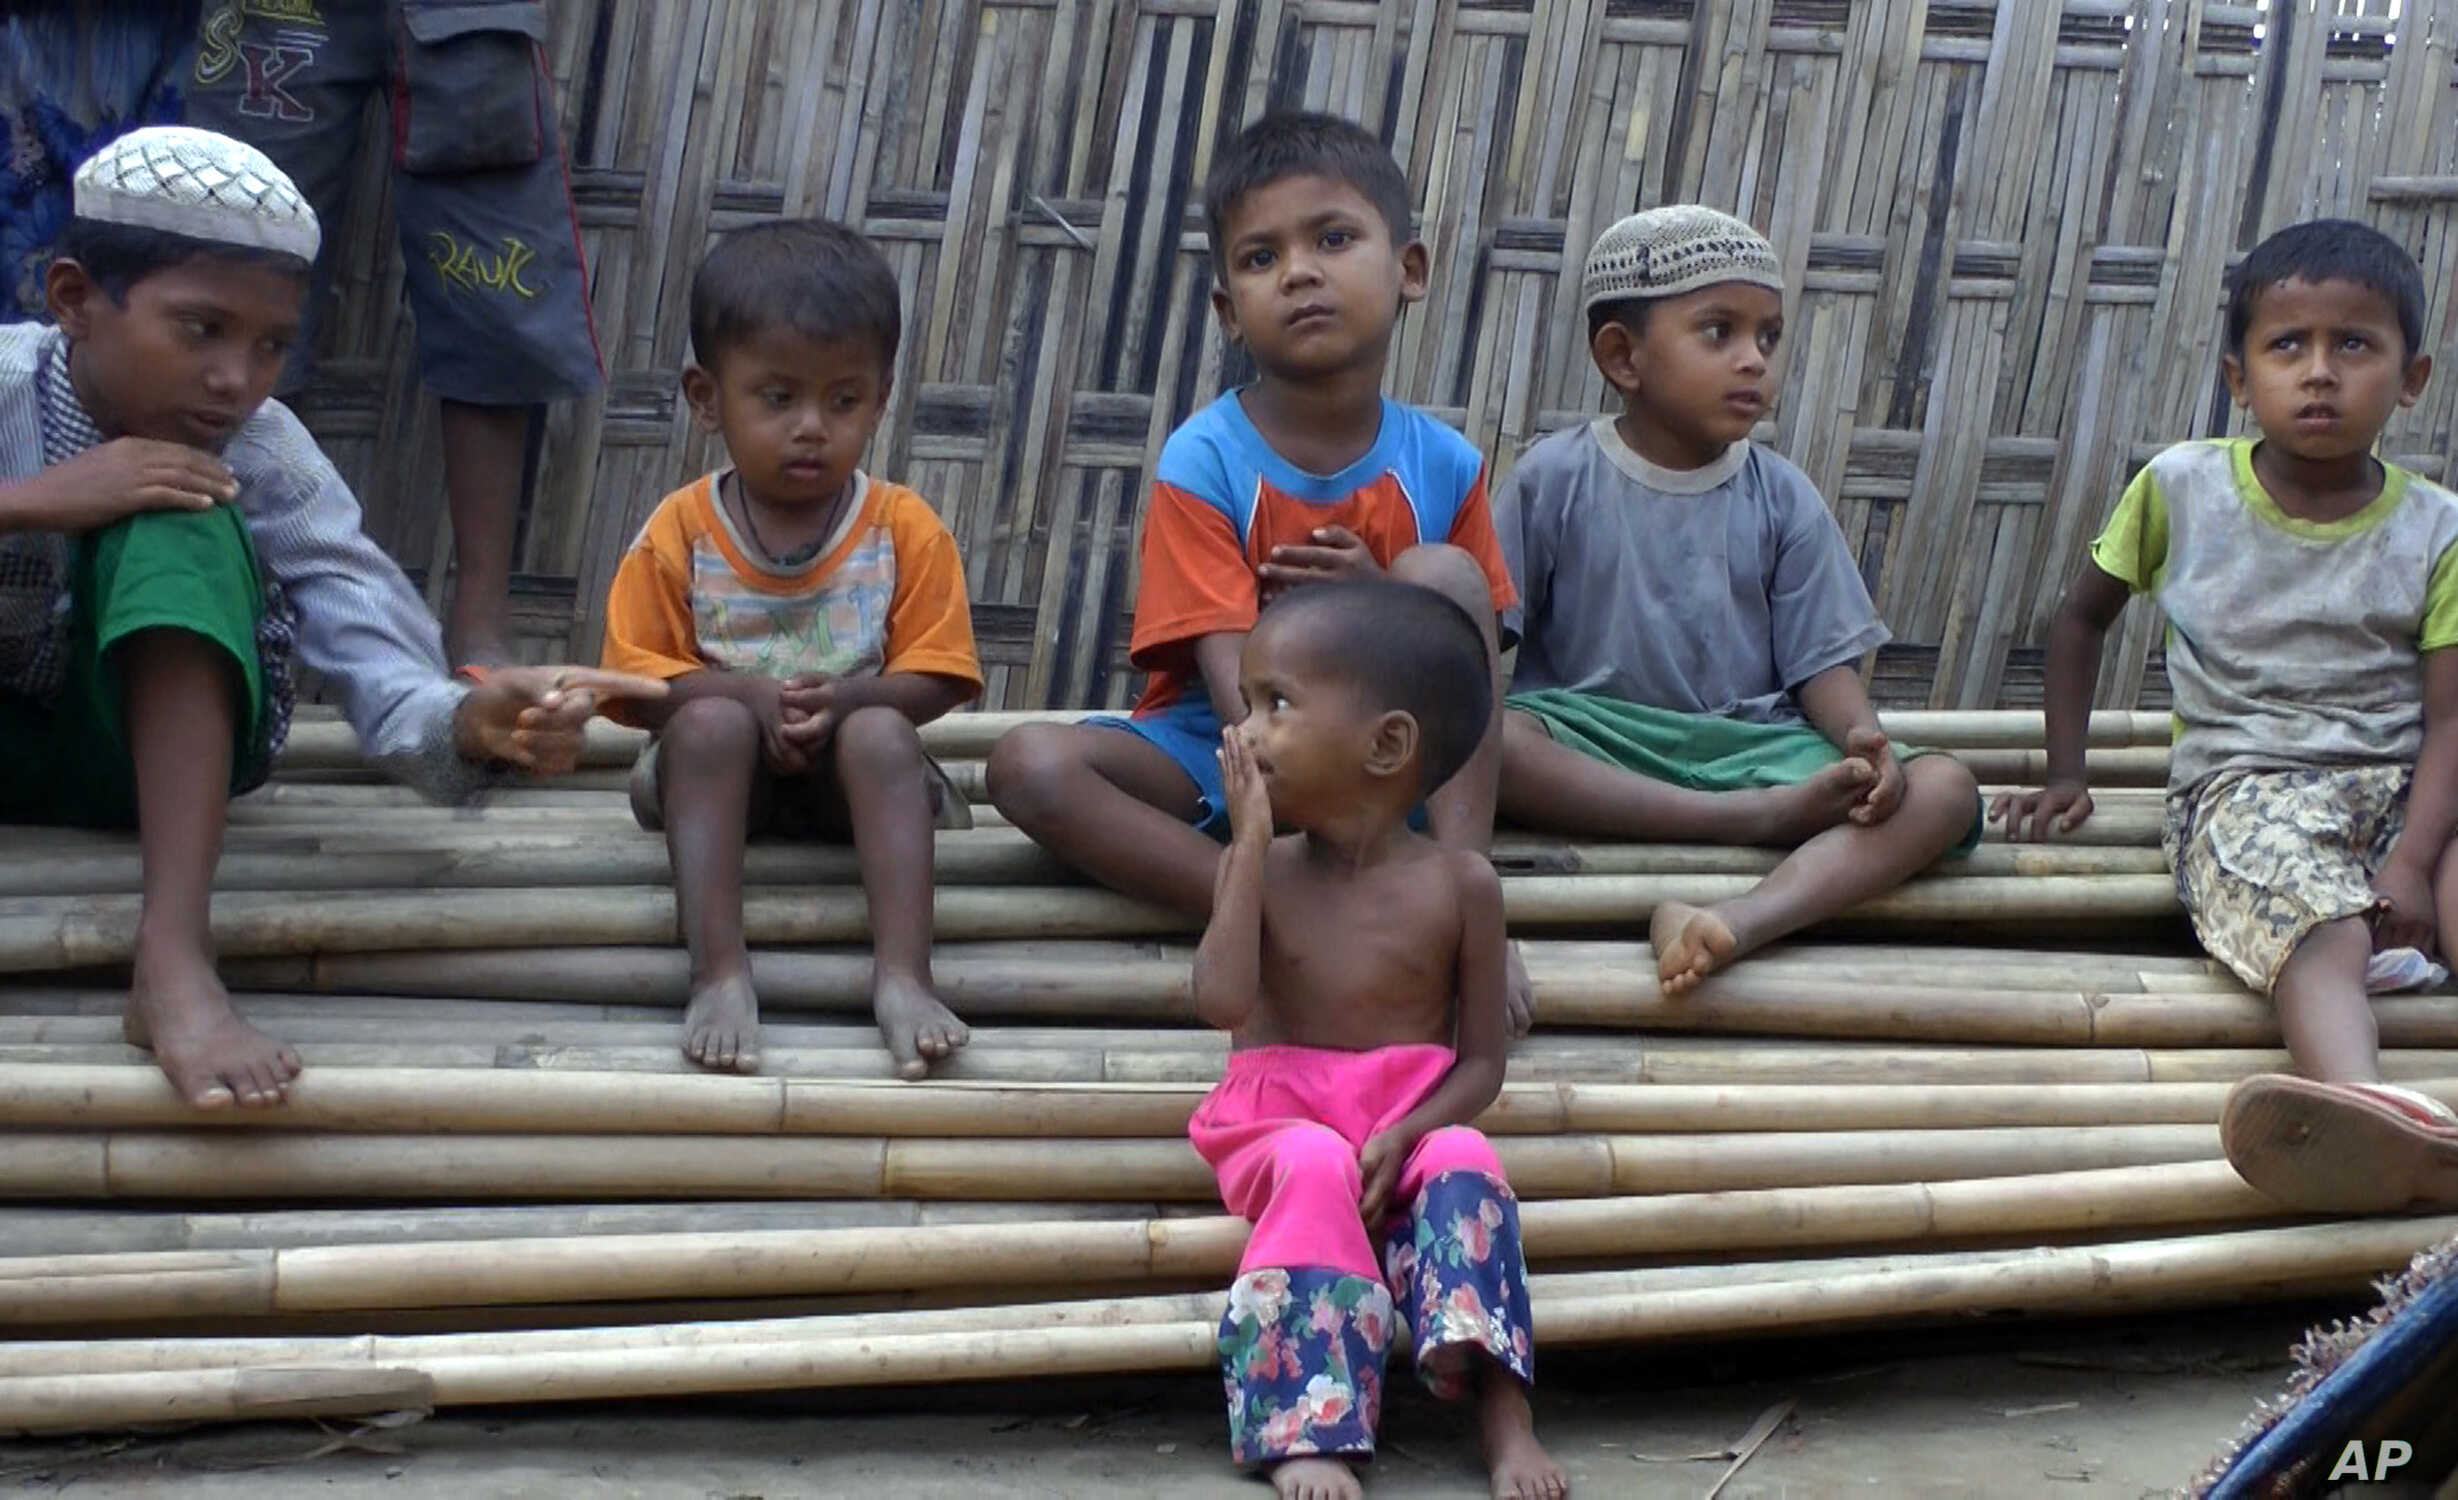 In this March 17, 2017, image made from video, Rosmaida Bibi, center foreground, suffering from severe malnutrition, sits on a pile of bamboo trees with other children at the Dar Paing camp, north of Sittwe, Rakhine state, Myanmar.